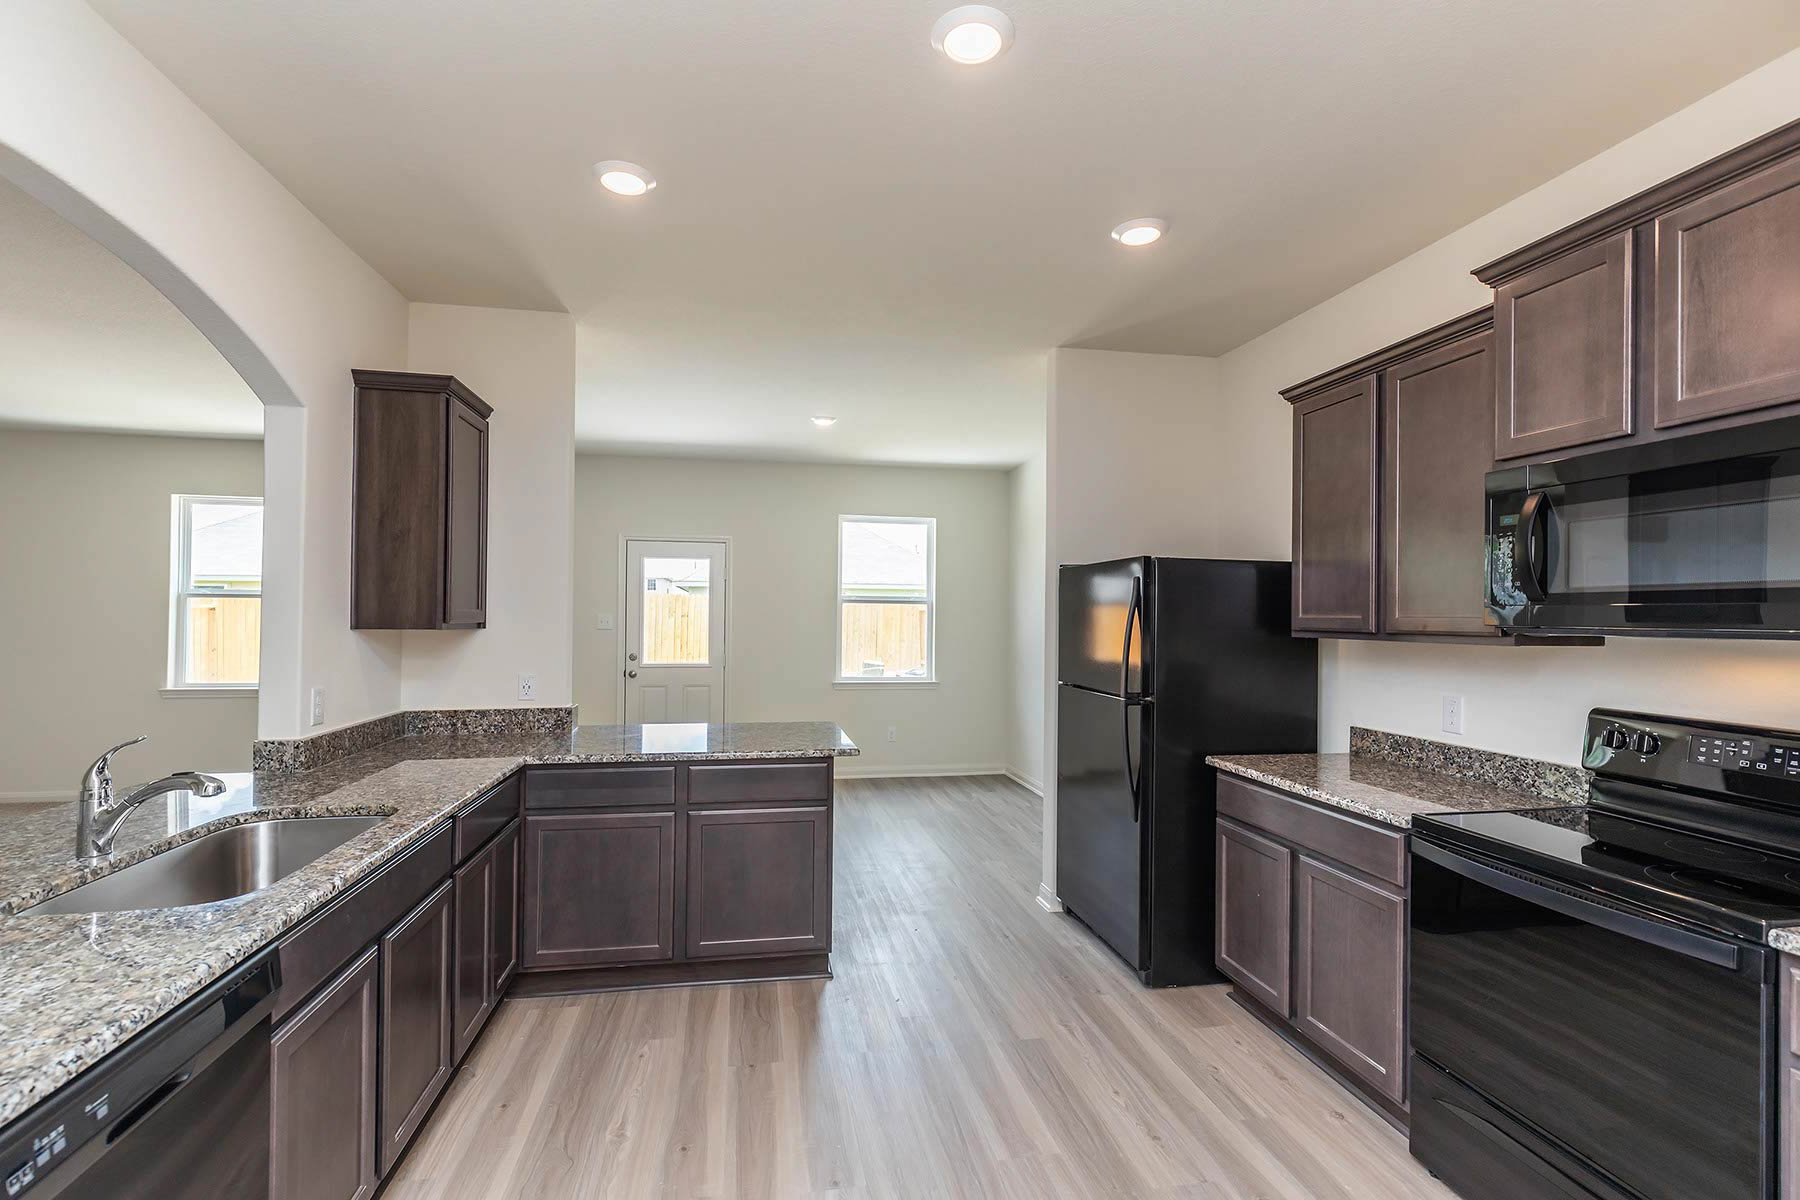 LGI Homes Announces New Section of Move-in Ready Homes at Joseph's Cove